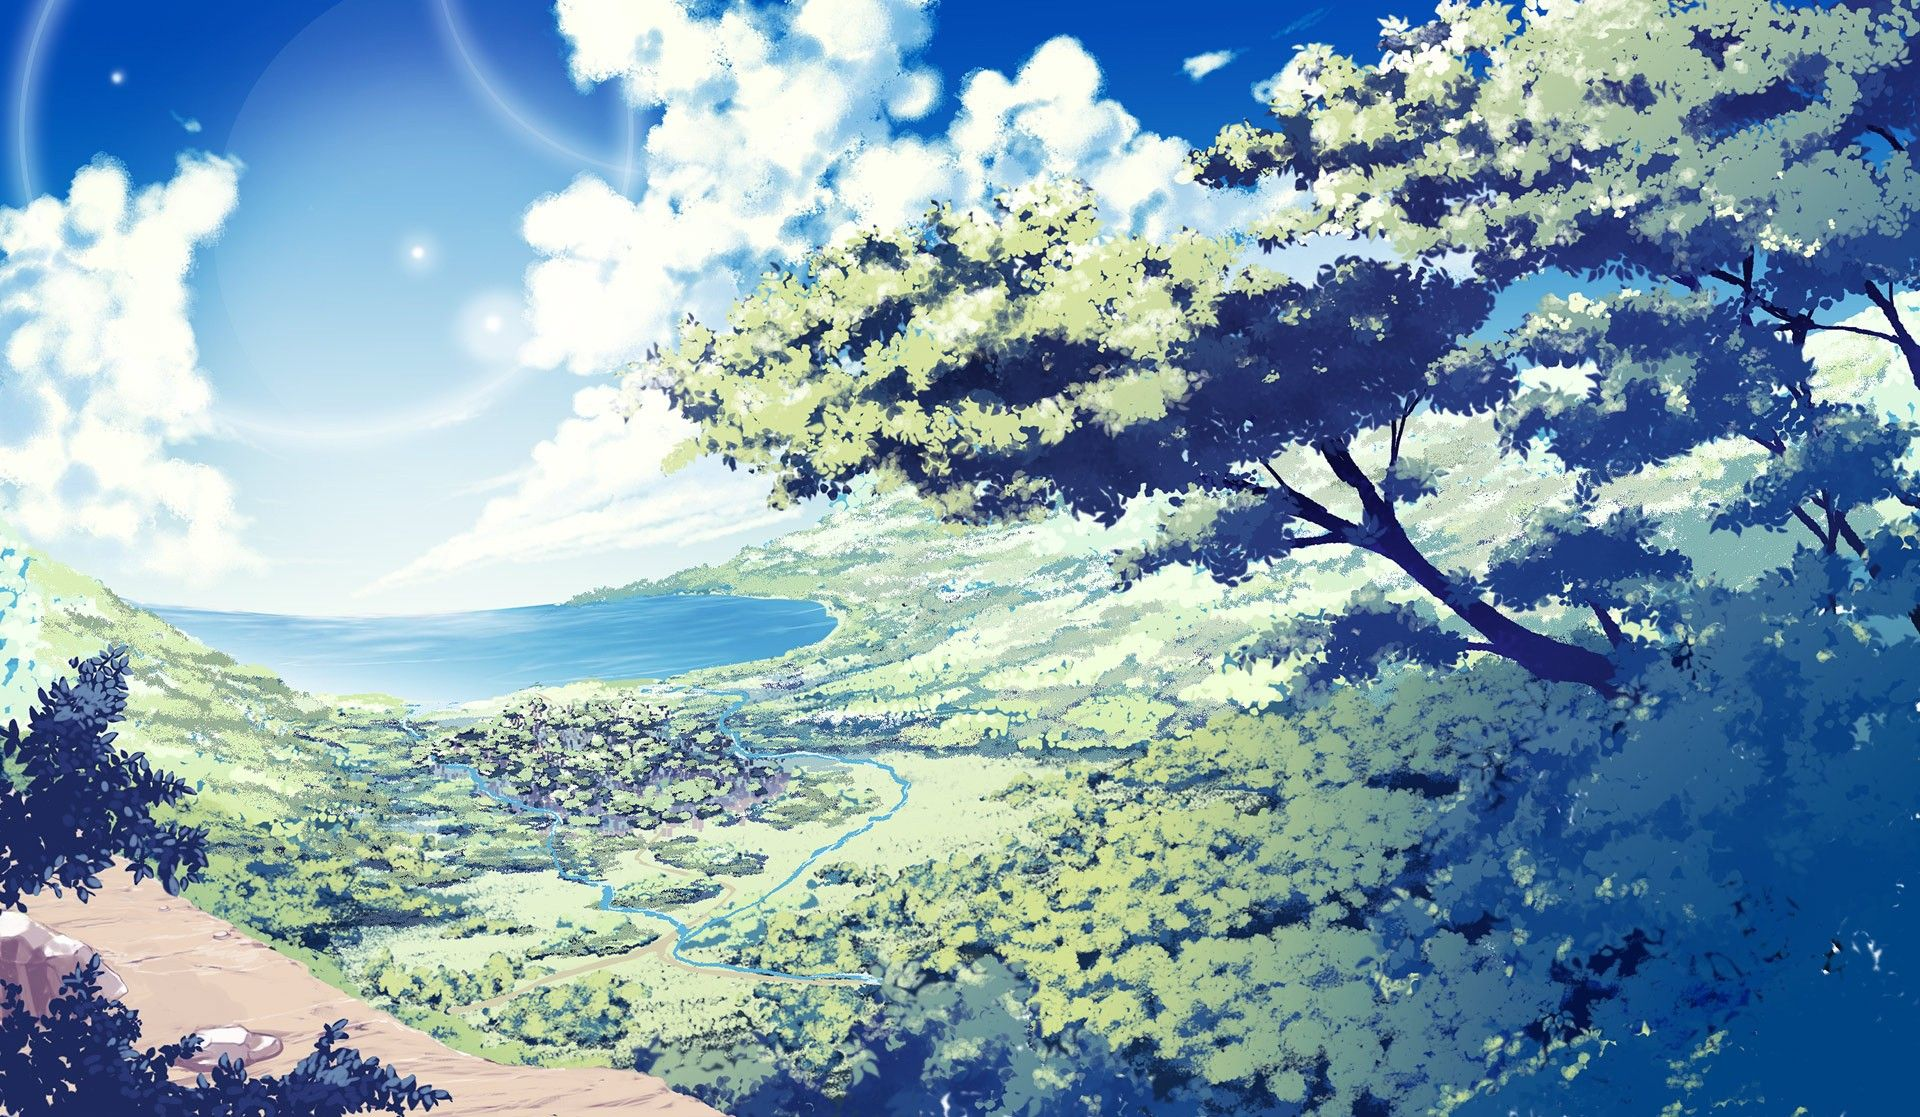 nature anime scenery background wallpaper | resources: wallpapers